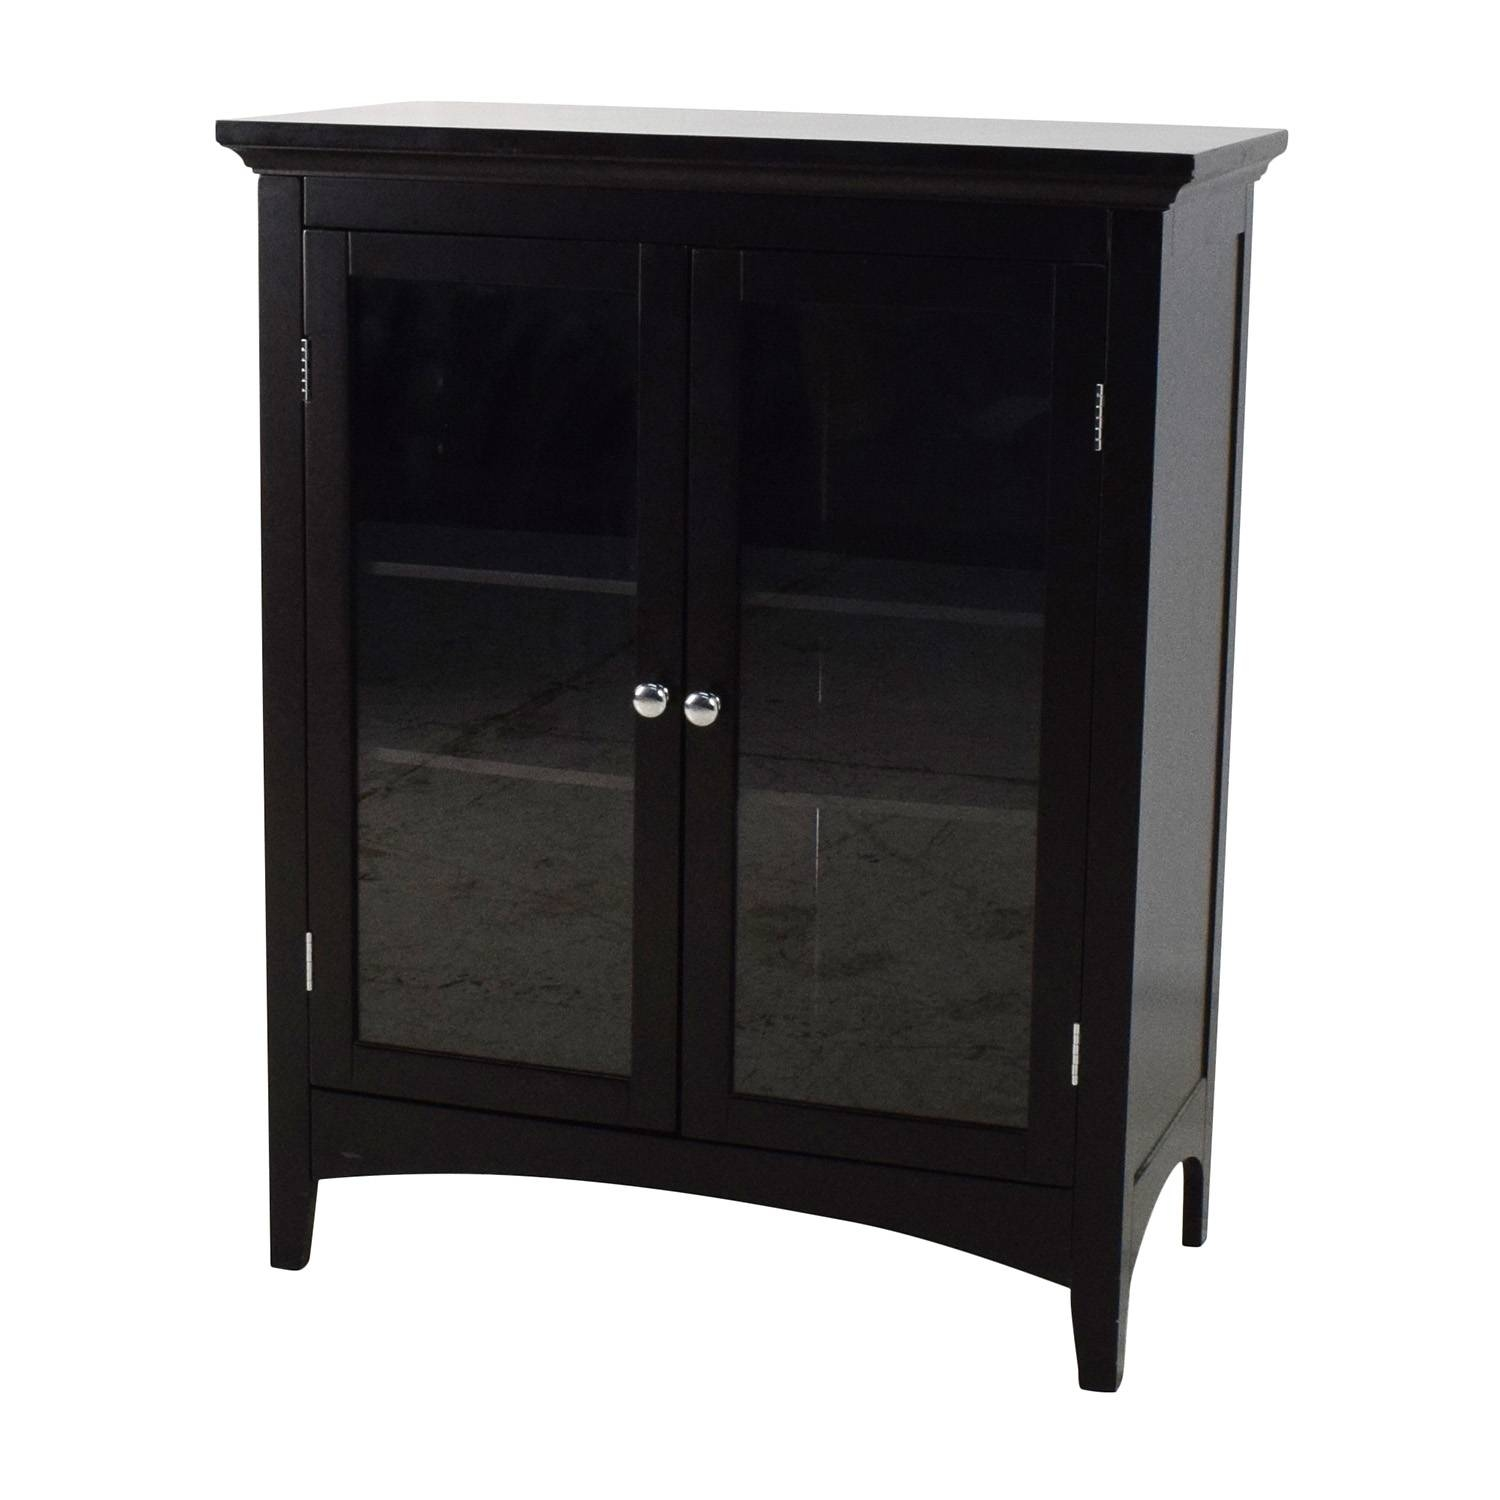 89% Off - Dark Brown Glass Door Cabinet / Storage regarding Glass Sideboards (Image 3 of 30)